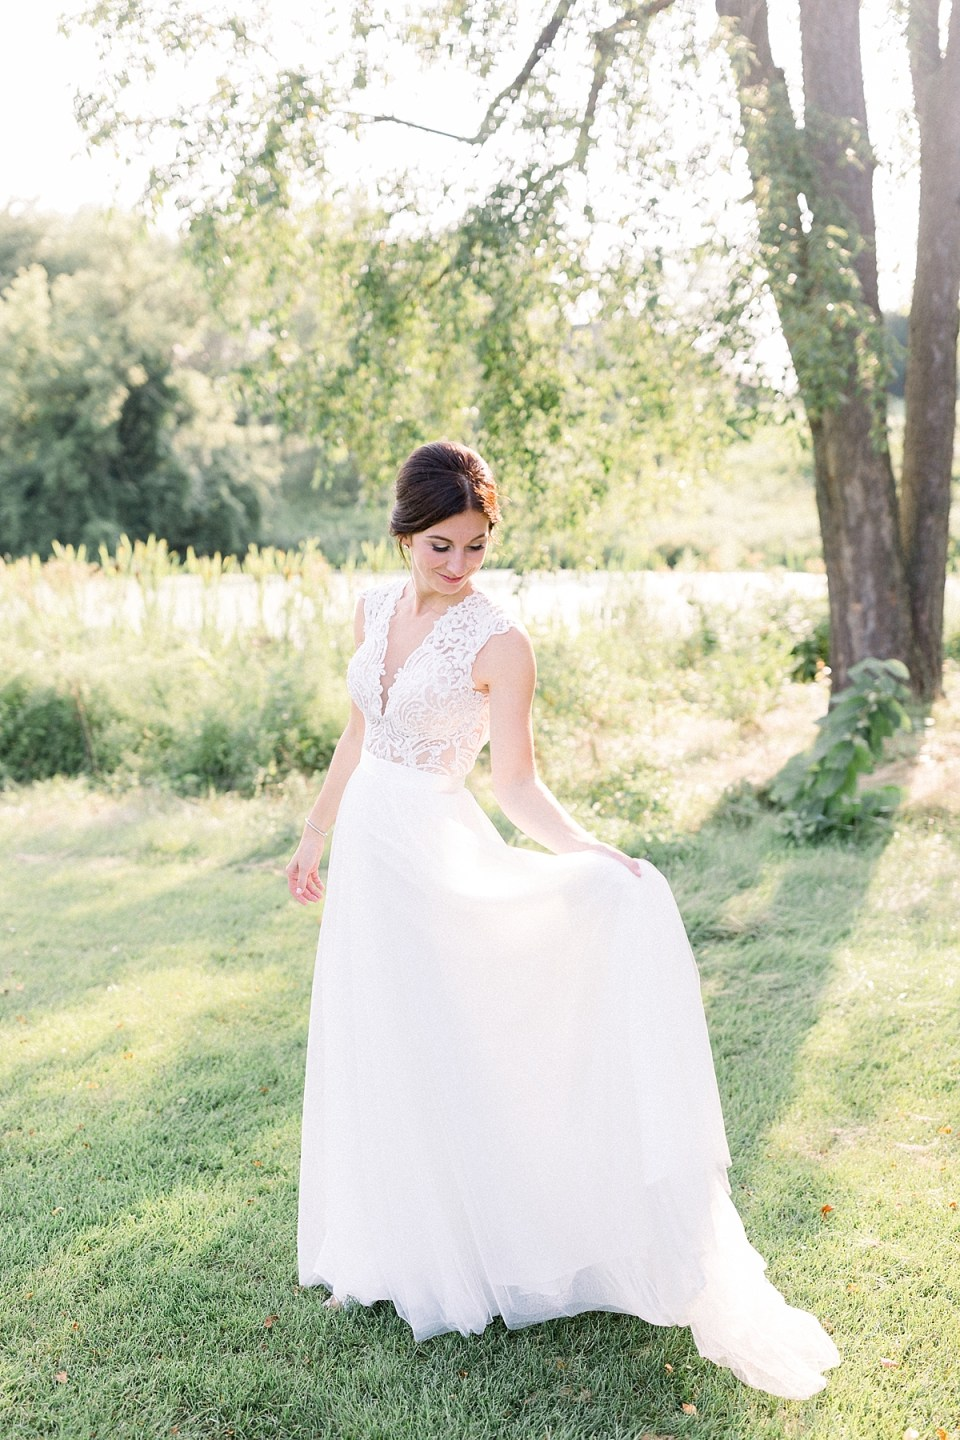 Arielle Peters Photography | Bride dancing in her gown outside at The Blue Heron at Blackthorn in South Bend, Indiana on wedding day.